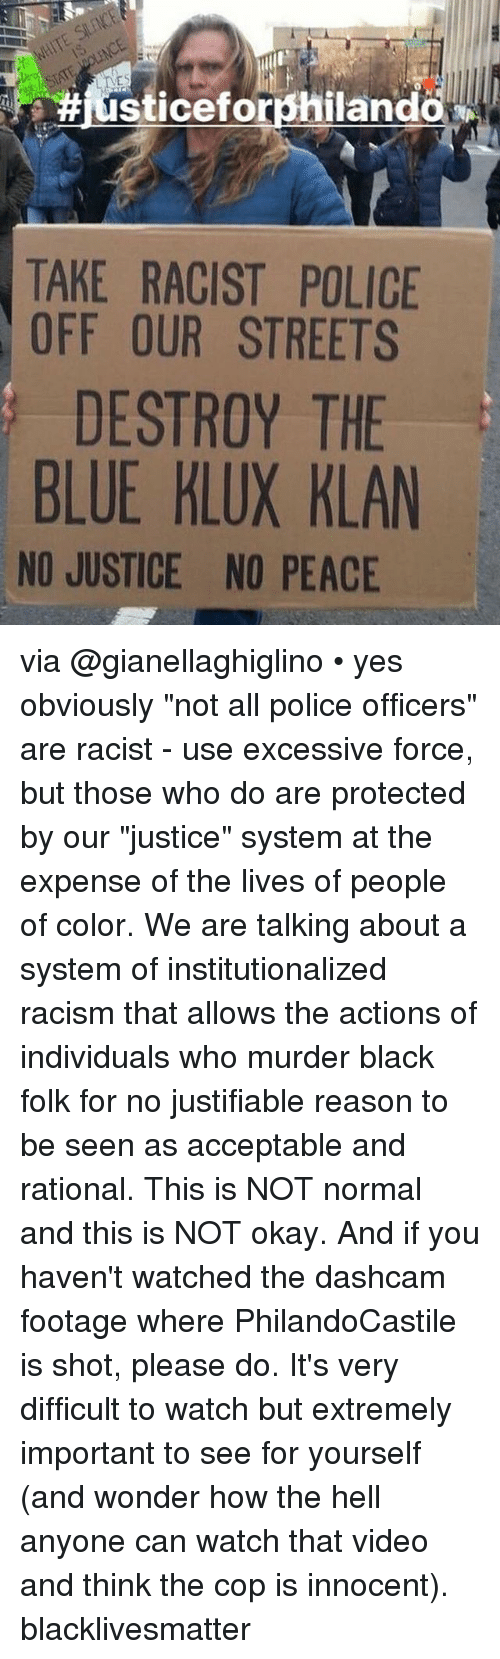 """rationale: IT  #iusticeforphiland  TAKE RACIST POLICE  OFF OUR STREETS  DESTROY THE  BLUE KLUX KLAN  NO JUSTICE NO PEACE via @gianellaghiglino • yes obviously """"not all police officers"""" are racist - use excessive force, but those who do are protected by our """"justice"""" system at the expense of the lives of people of color. We are talking about a system of institutionalized racism that allows the actions of individuals who murder black folk for no justifiable reason to be seen as acceptable and rational. This is NOT normal and this is NOT okay. And if you haven't watched the dashcam footage where PhilandoCastile is shot, please do. It's very difficult to watch but extremely important to see for yourself (and wonder how the hell anyone can watch that video and think the cop is innocent). blacklivesmatter"""